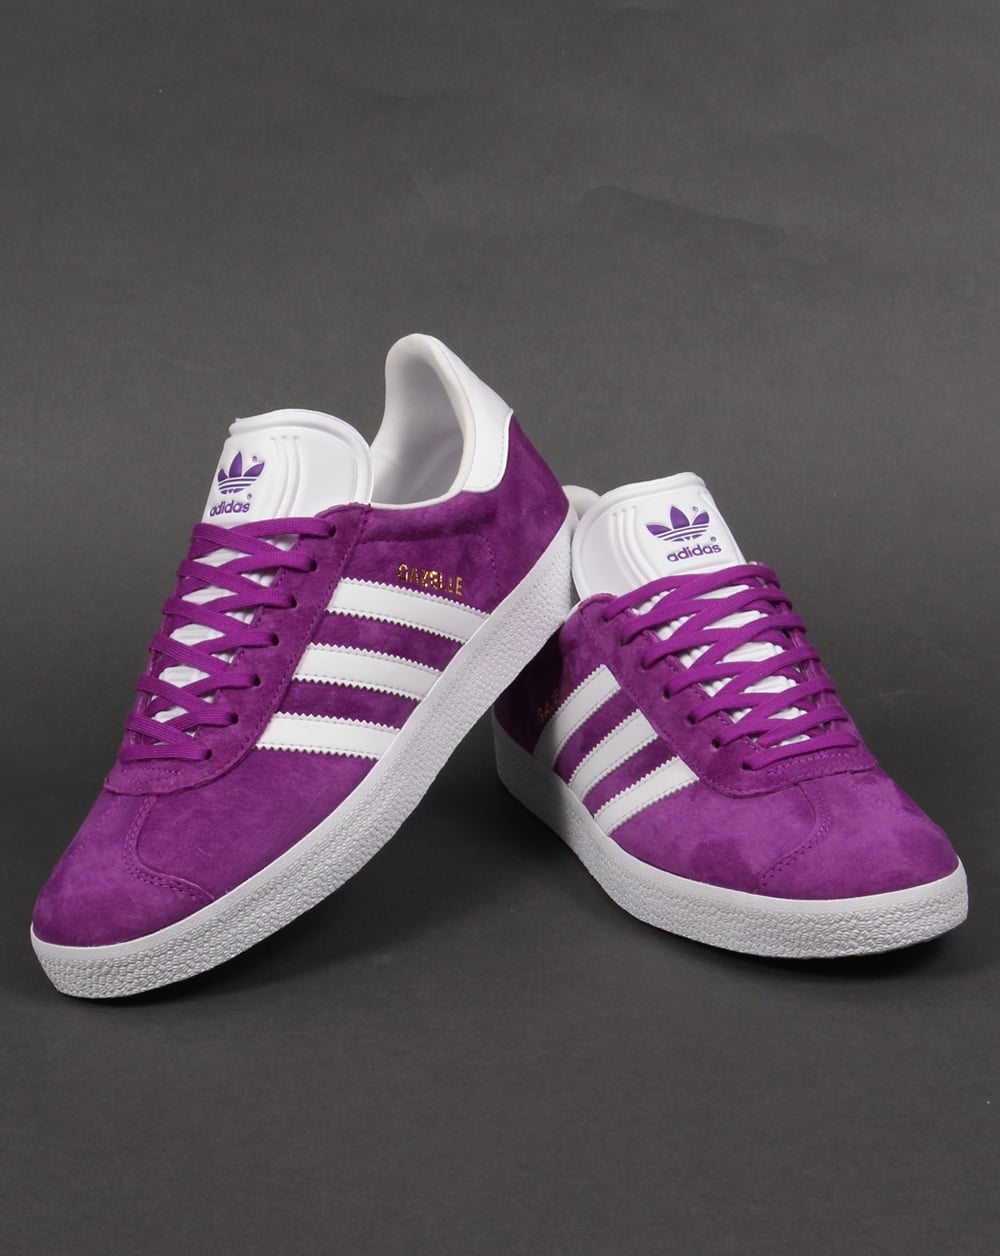 adidas gazelle purple and white